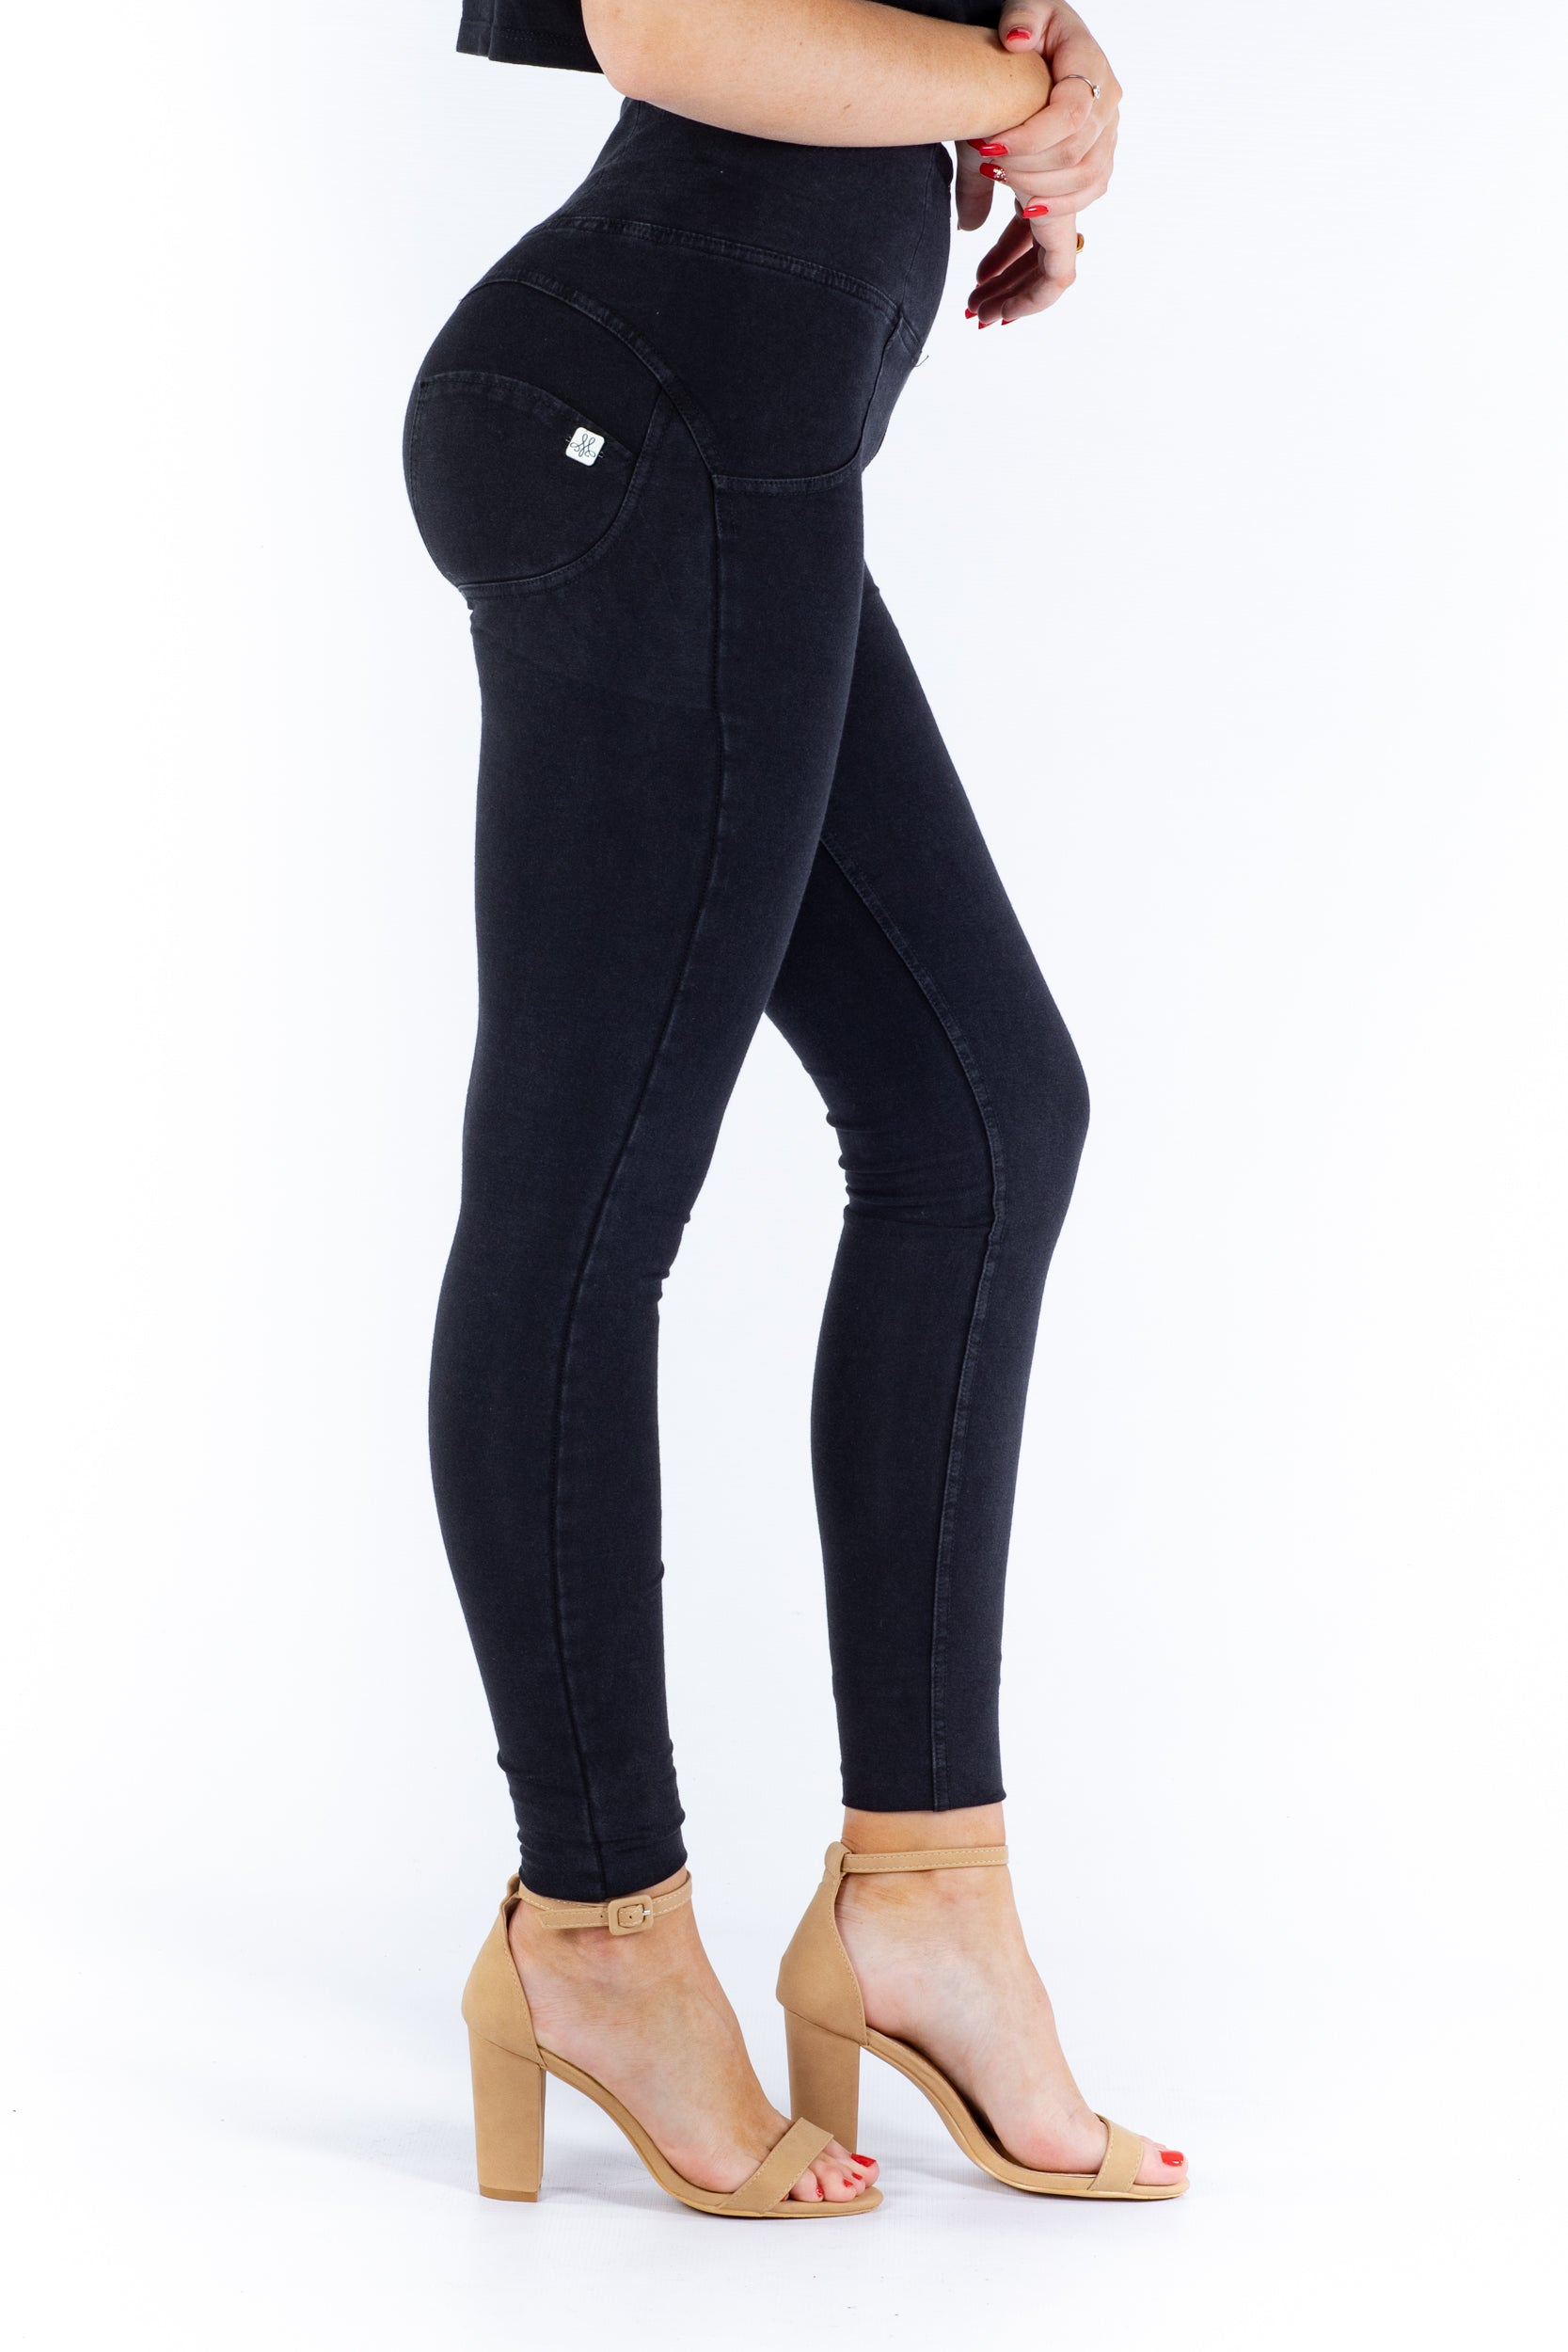 Image of High waist Butt lifting Jeggings - Black Wash Black stitching